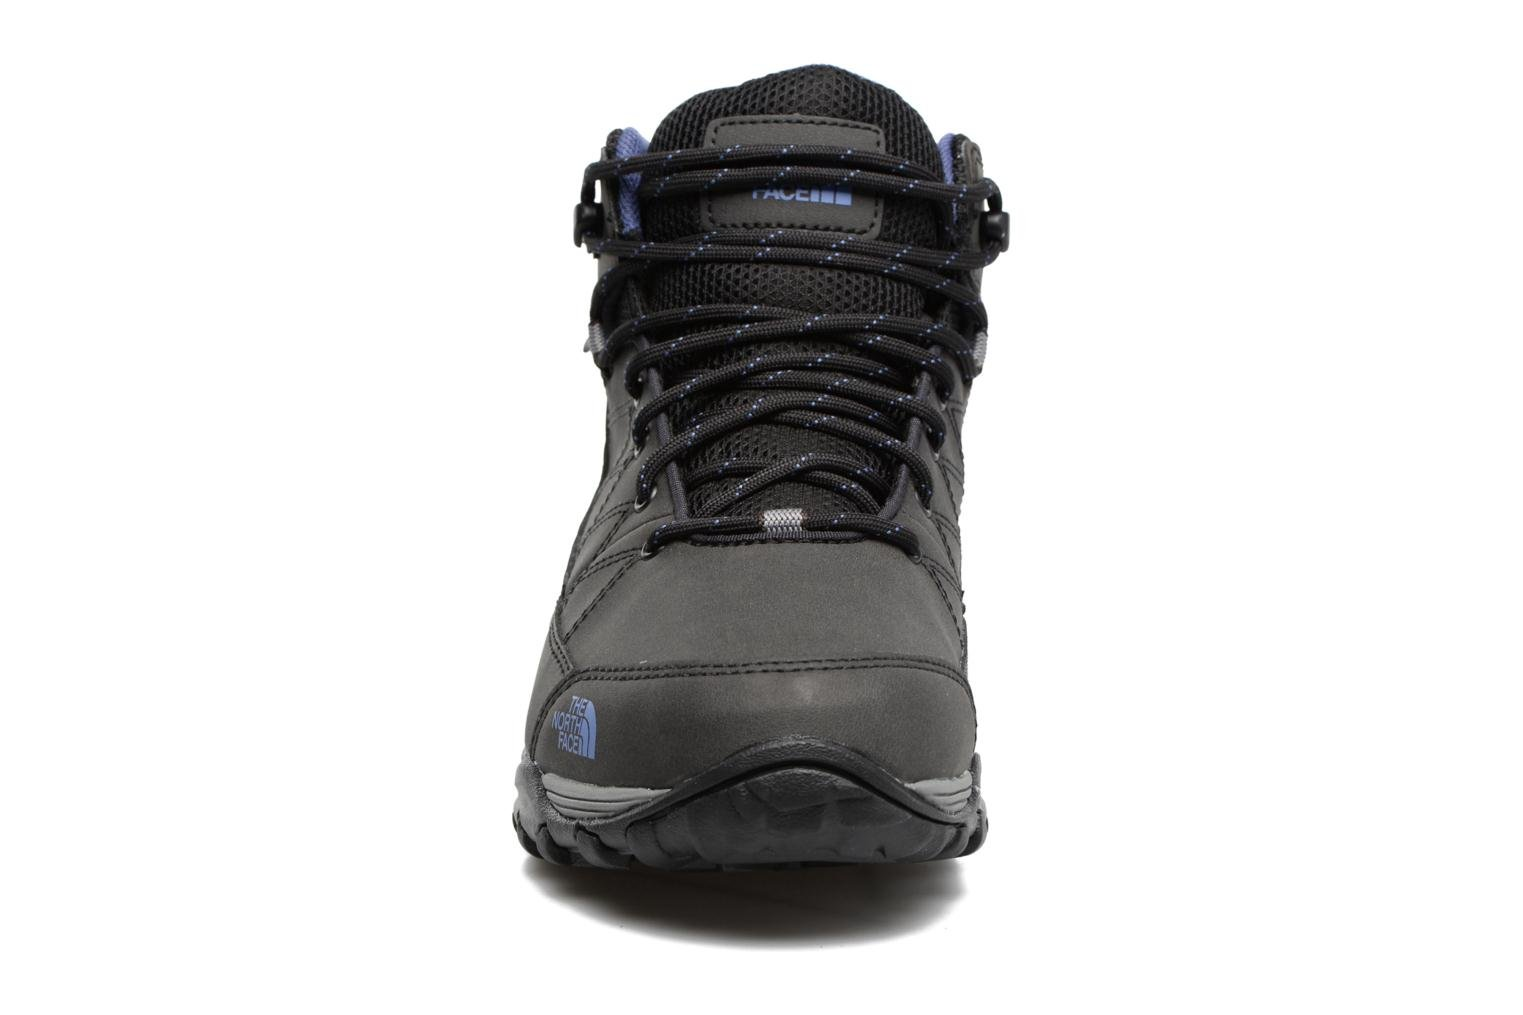 Storm Strike Wp Black/Sedona Sage Grey